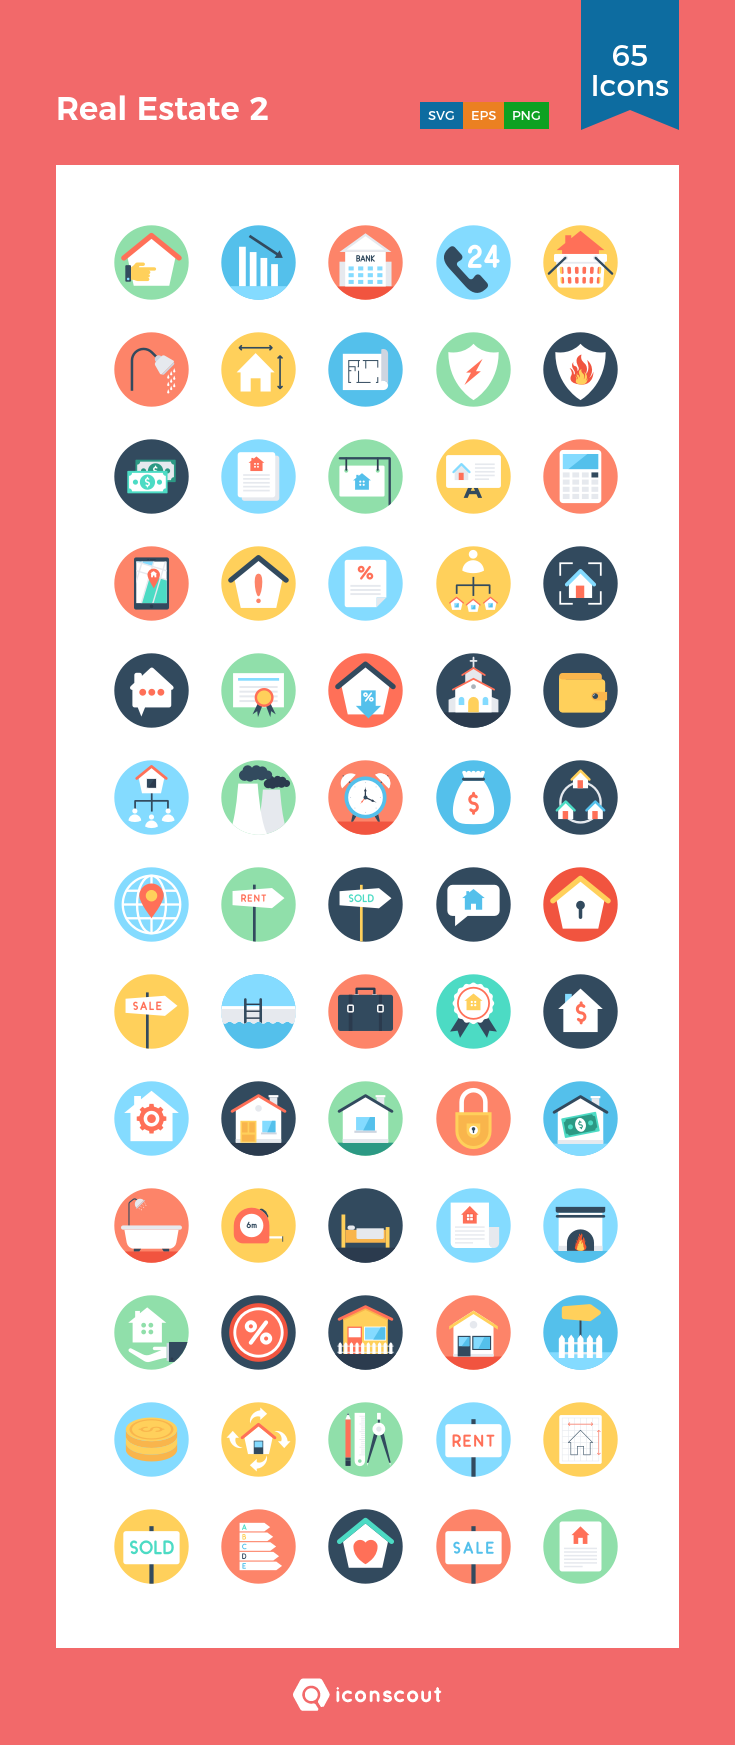 Download Real Estate 2 Icon Pack Available In Svg Png Eps Ai Icon Fonts With Images Icon Pack Flat Icon Restaurant Icon